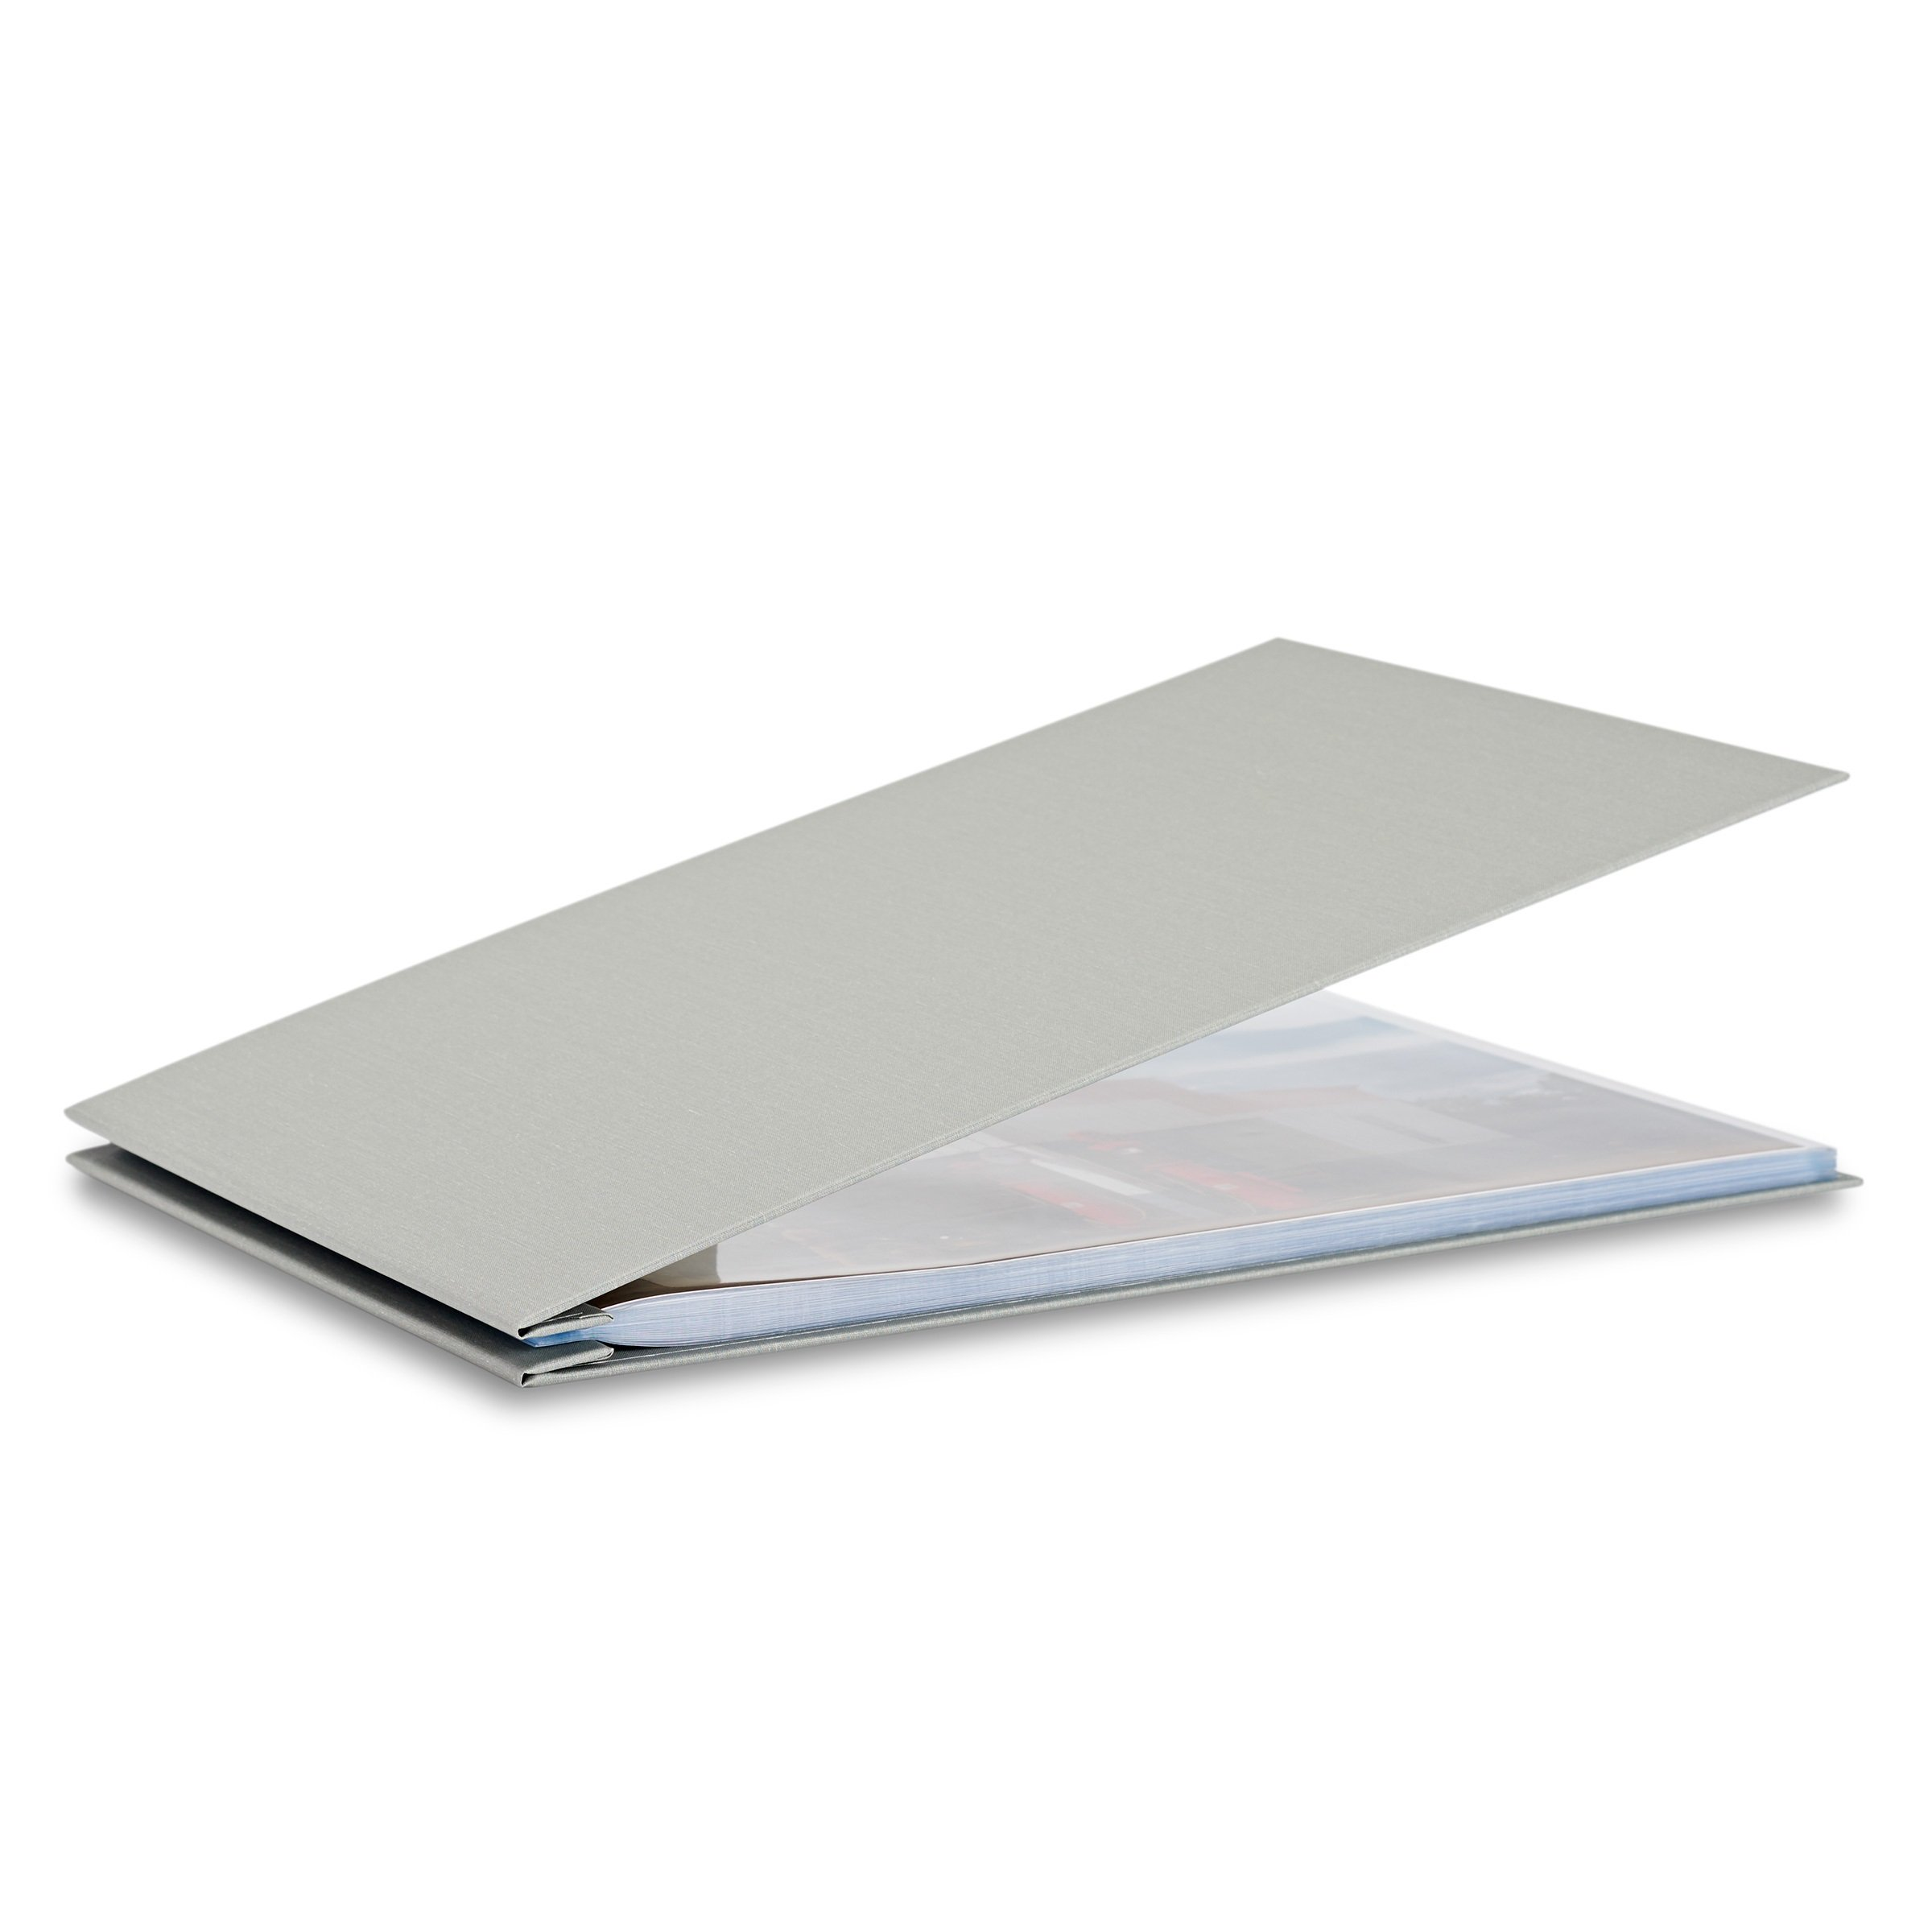 Pina Zangaro Bex 11x17 Landscape Screwpost Binder Gray, Includes 20 Pro-Archive Sheet Protectors (34062)